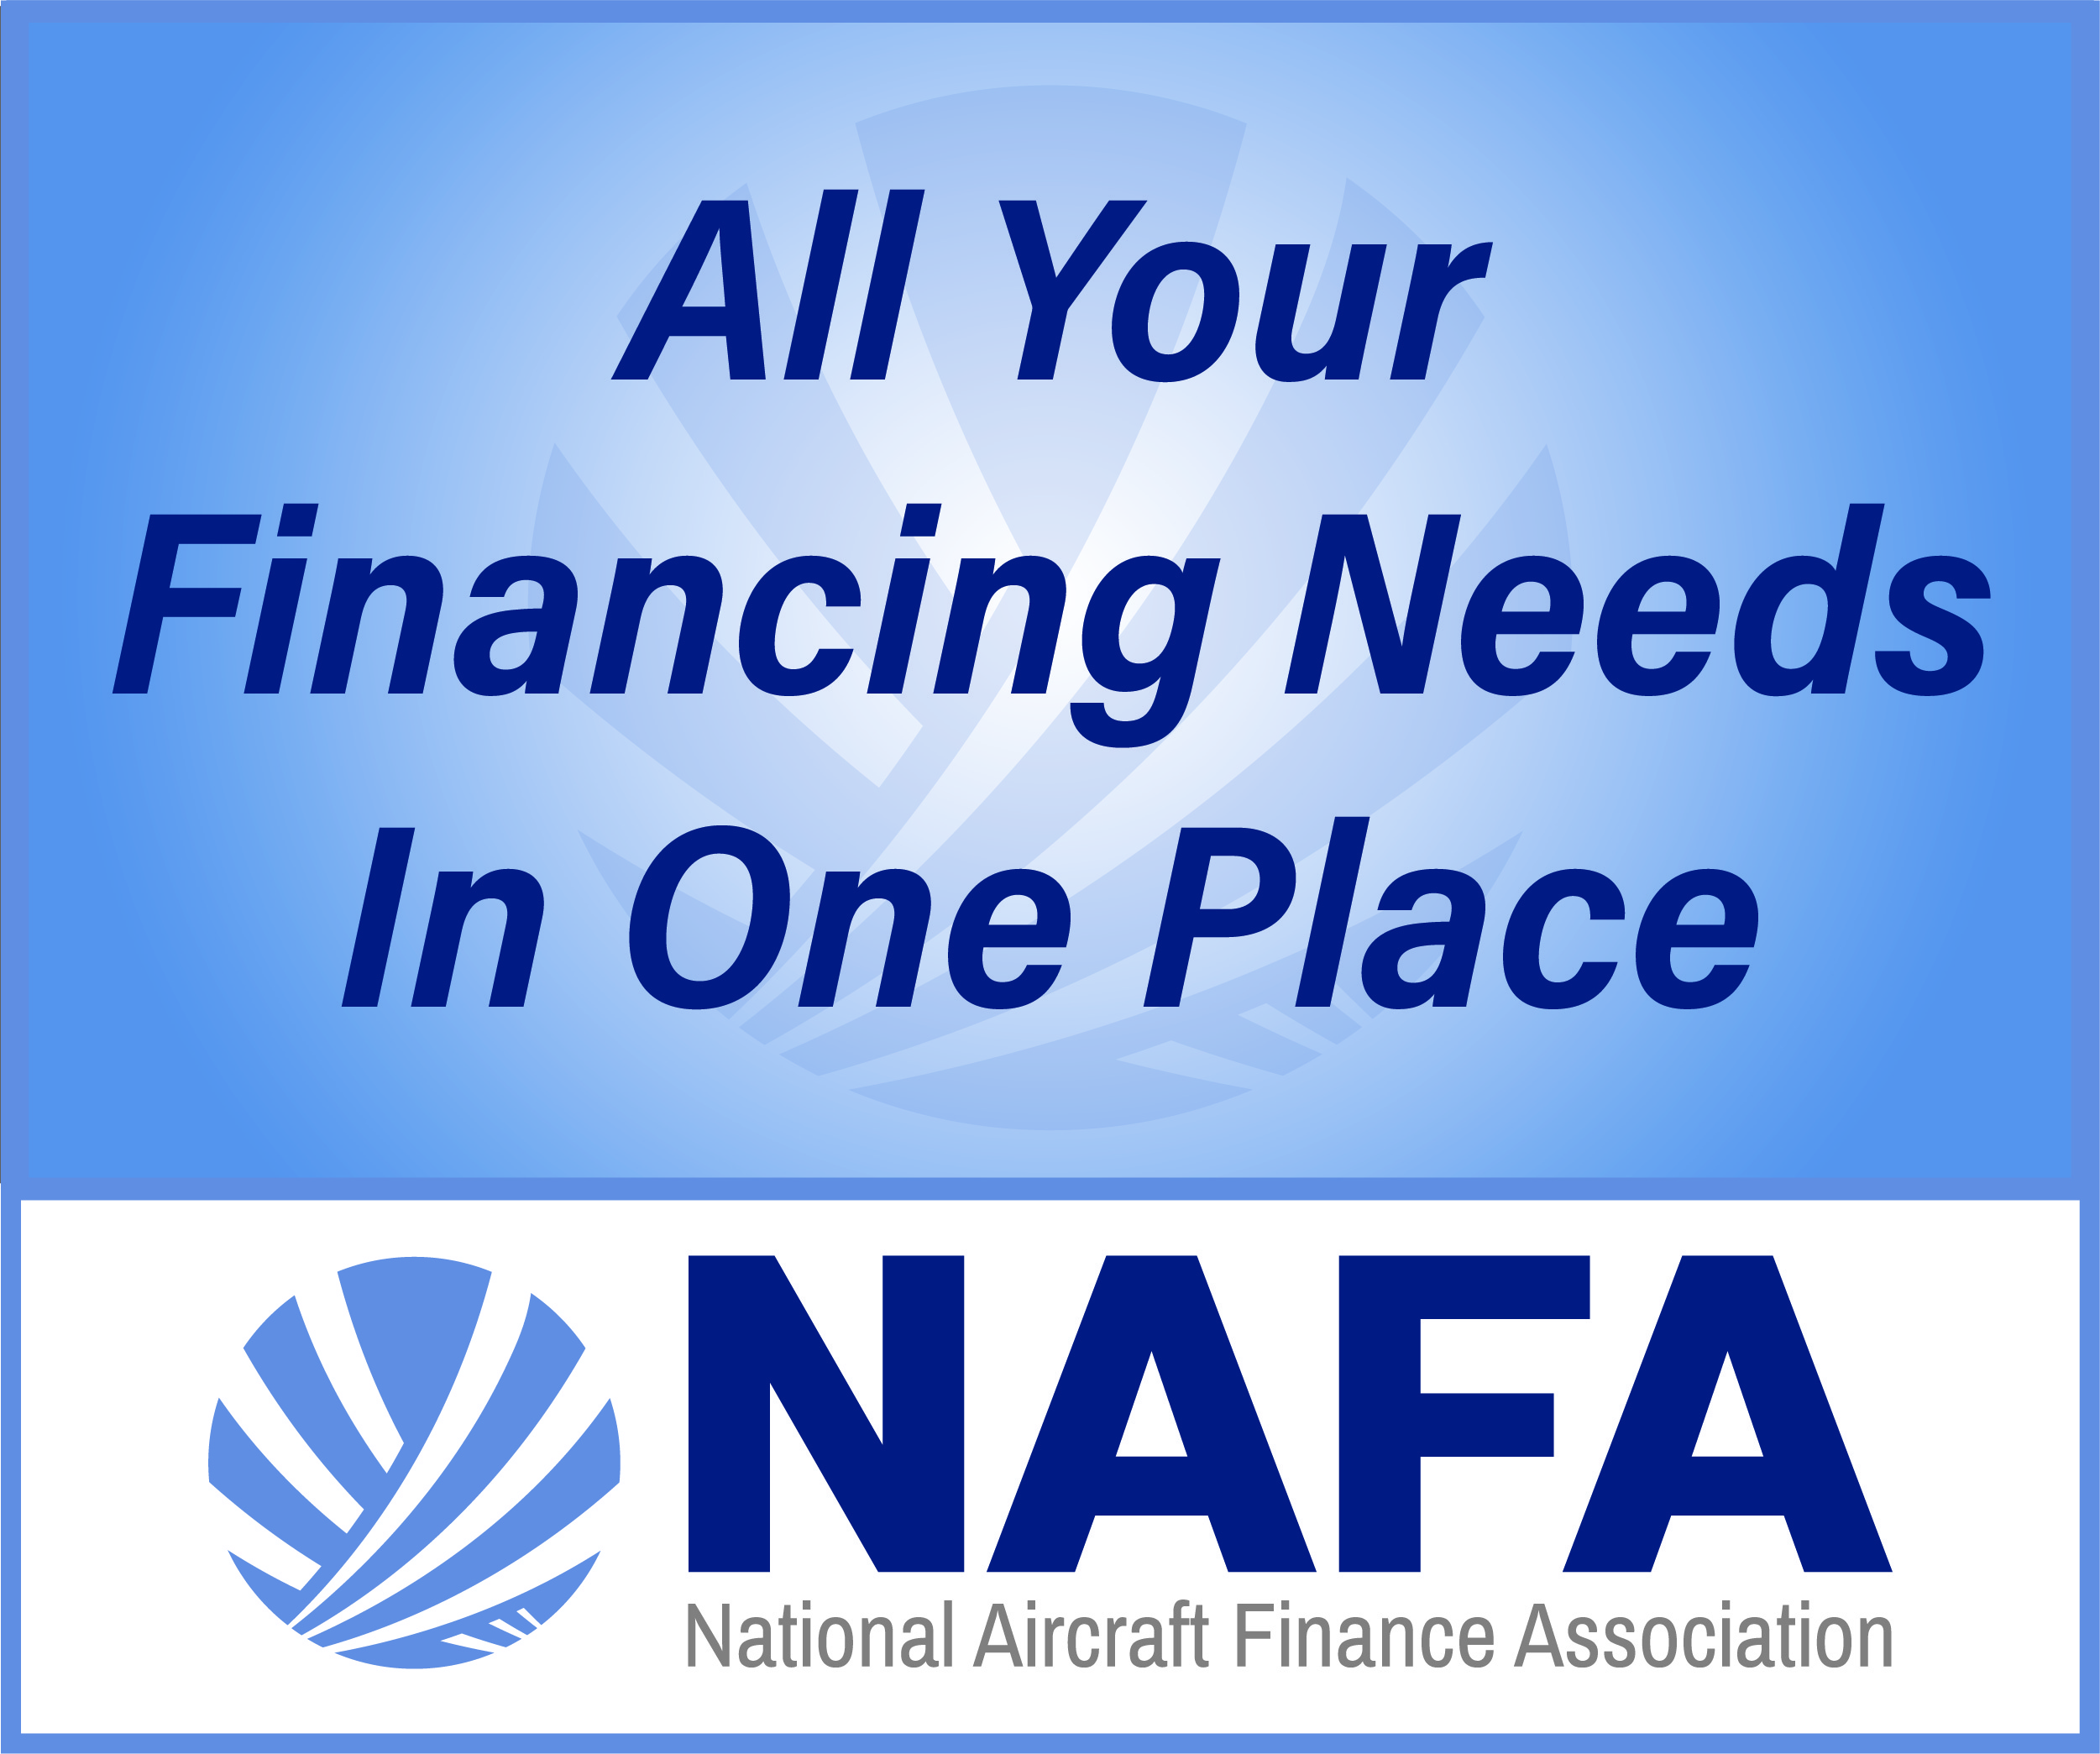 National Aircraft Finance Association